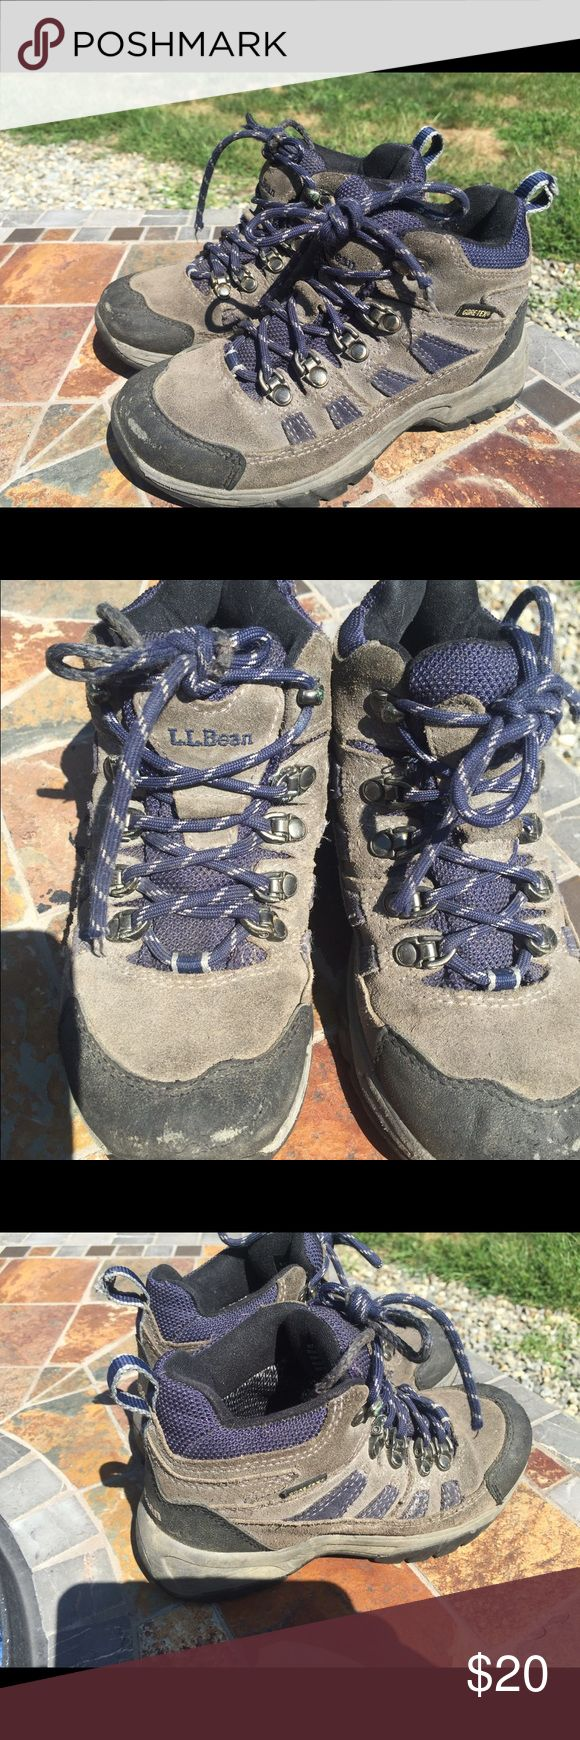 Girls Hiking Boots Size 2 girls hiking shoes. Waterproof and Gore-tex! Cute and very comfortable! Some scuffs and signs of wear. Soles are in great condition! Great condition! Retails $80 new! Will ship within 24 hours. L.L. Bean Shoes Boots